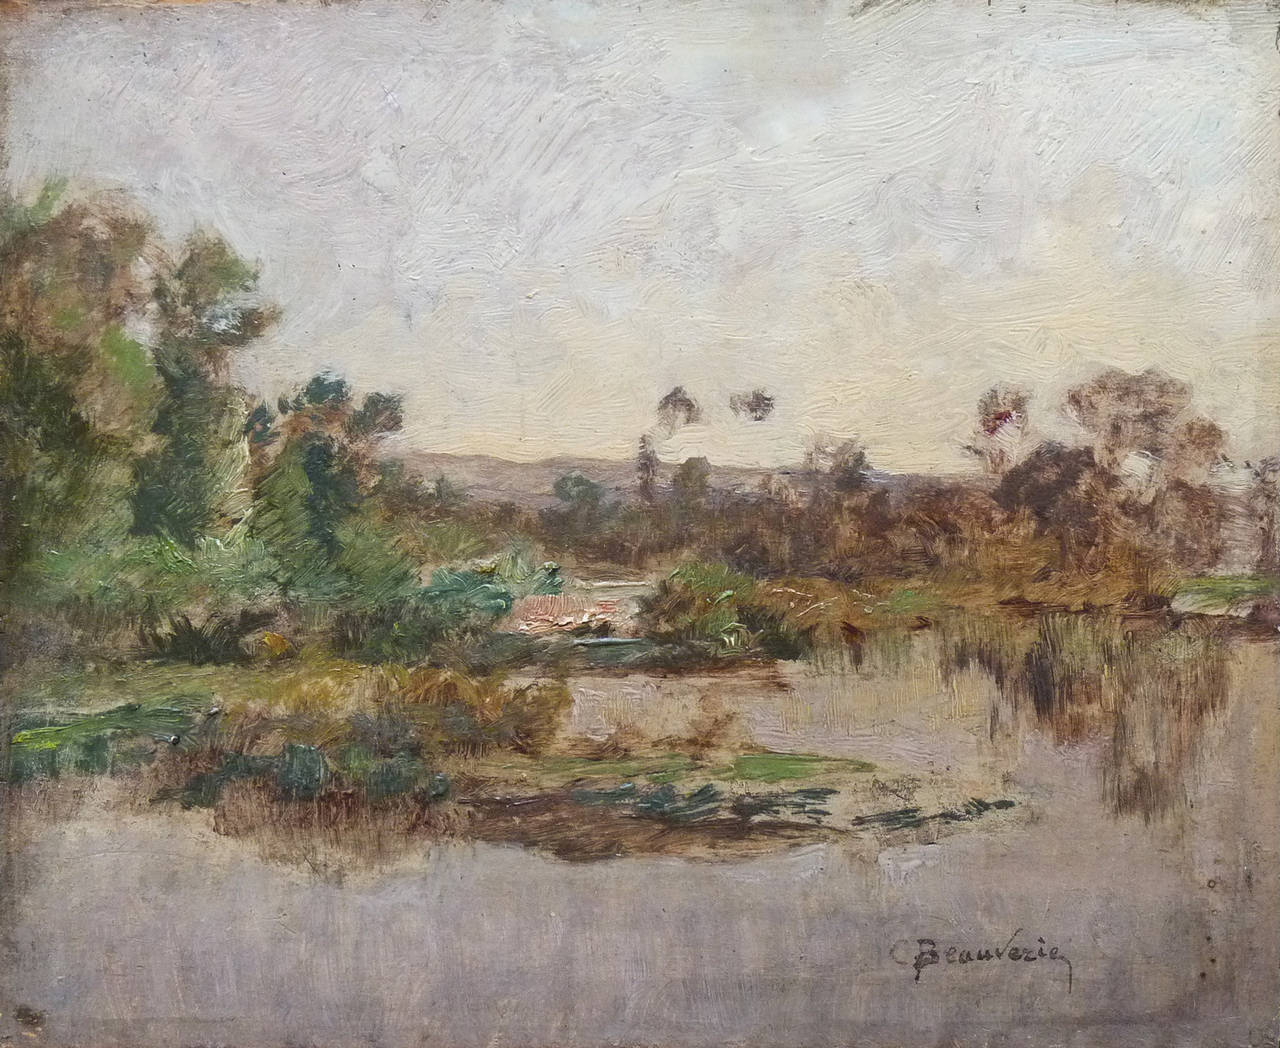 SIGNED lower right